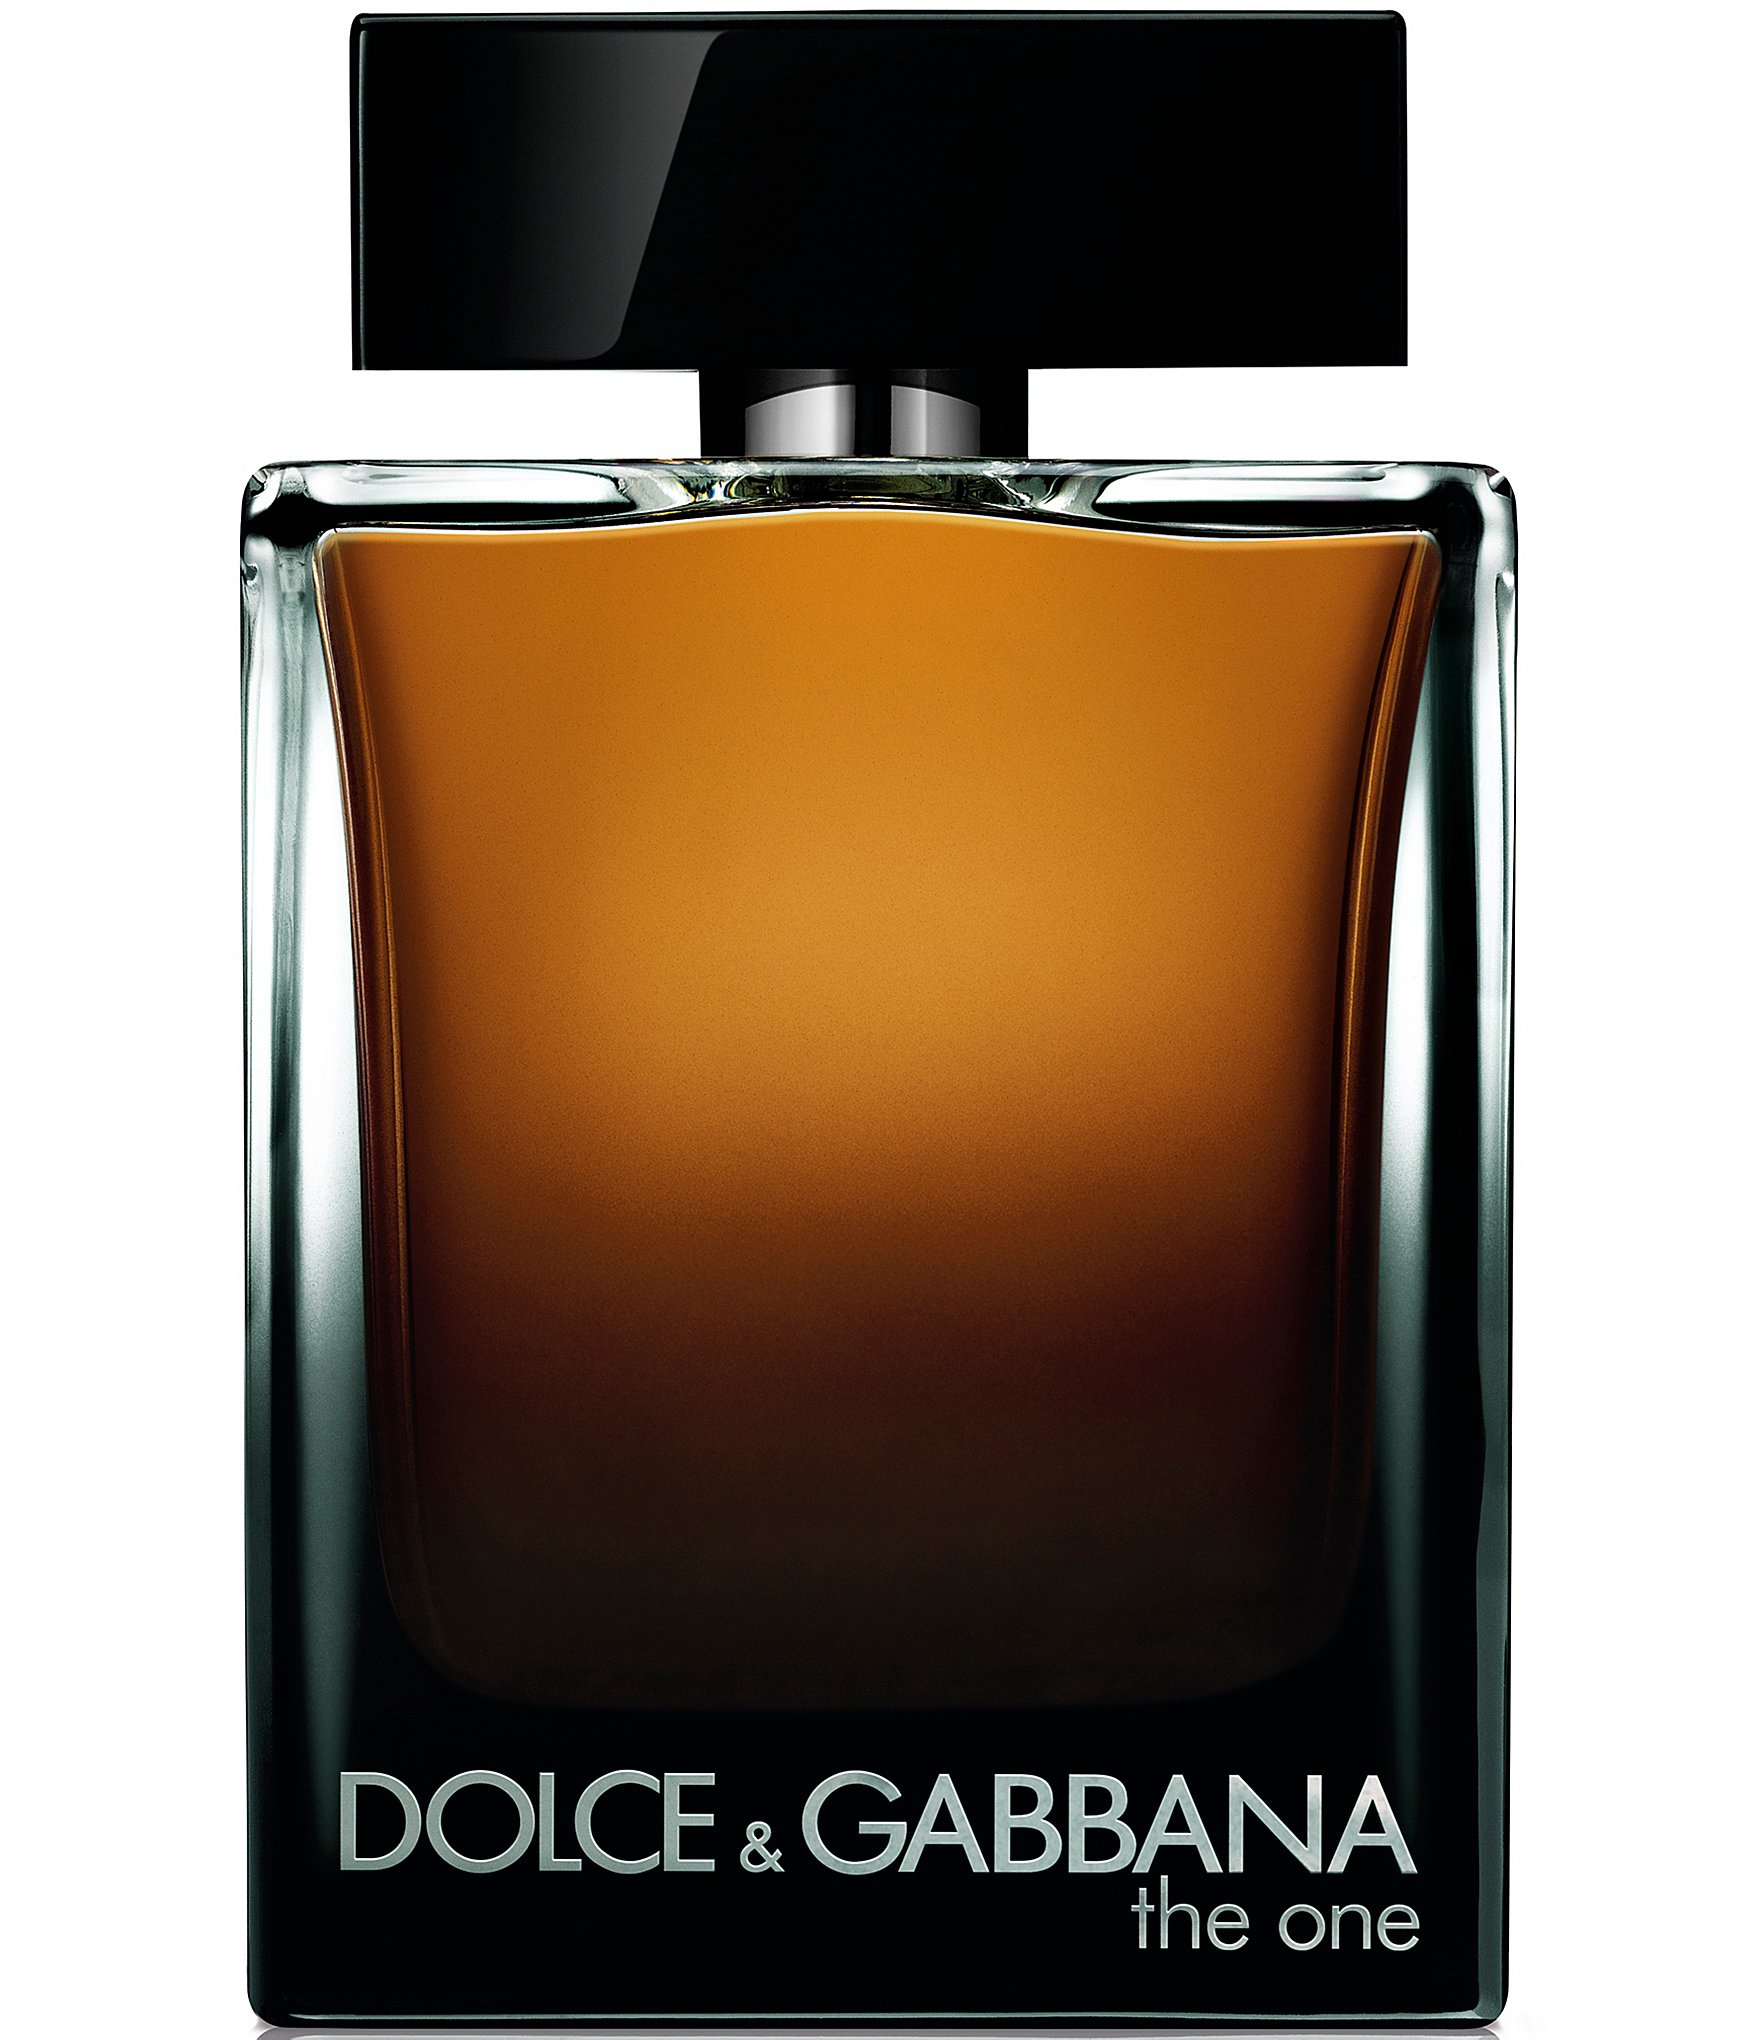 dolce gabbana the one for men eau de parfum spray dillards. Black Bedroom Furniture Sets. Home Design Ideas